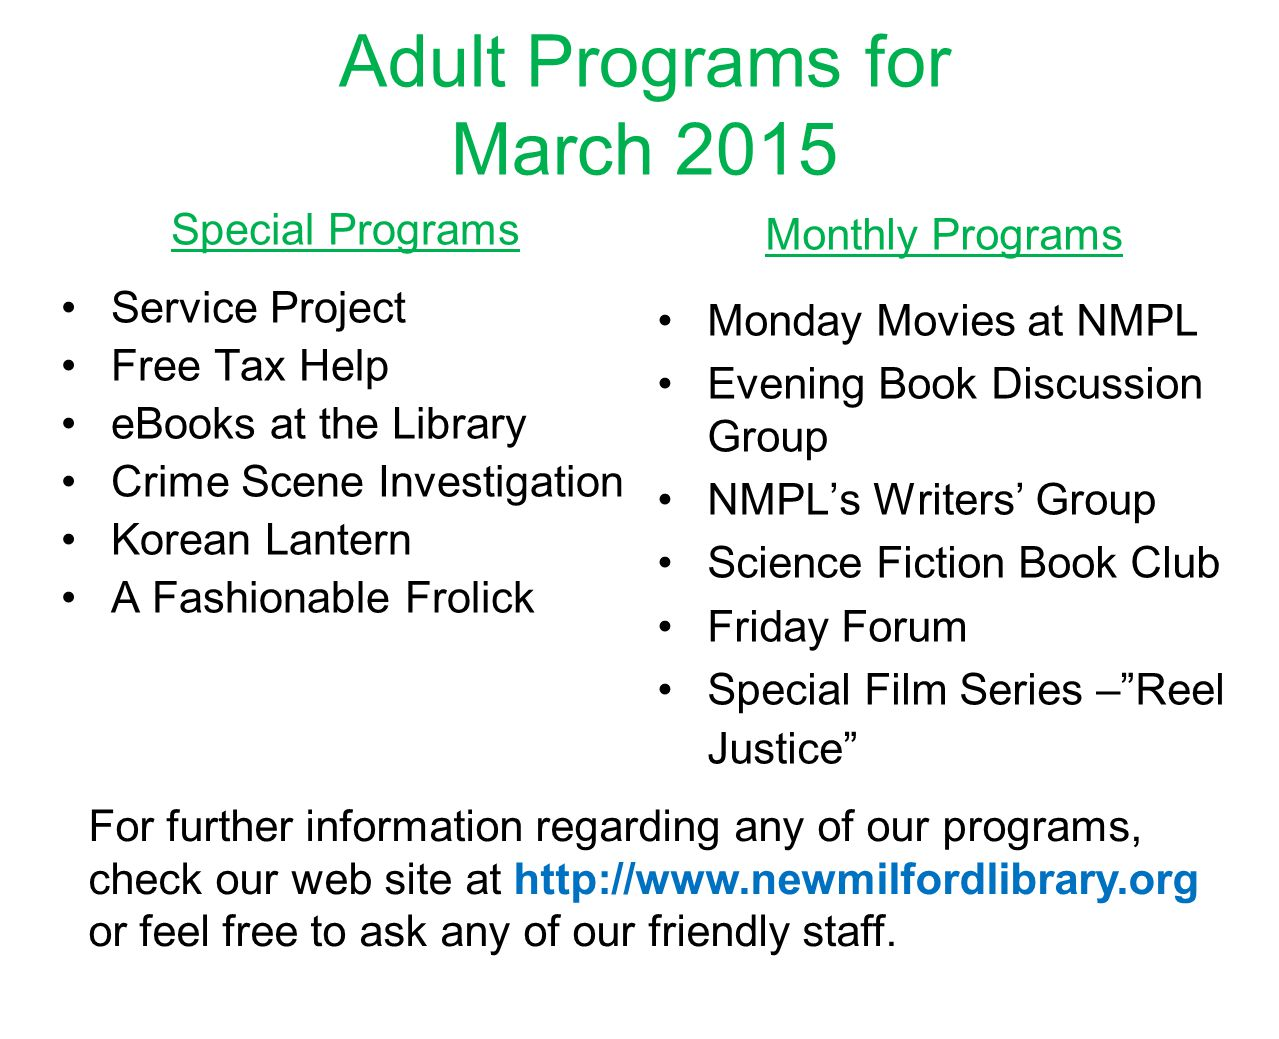 Adult Programs for March 2015 Special Programs Service Project Free Tax Help eBooks at the Library Crime Scene Investigation Korean Lantern A Fashionable Frolick Monthly Programs Monday Movies at NMPL Evening Book Discussion Group NMPL's Writers' Group Science Fiction Book Club Friday Forum Special Film Series – Reel Justice For further information regarding any of our programs, check our web site at http://www.newmilfordlibrary.org or feel free to ask any of our friendly staff.